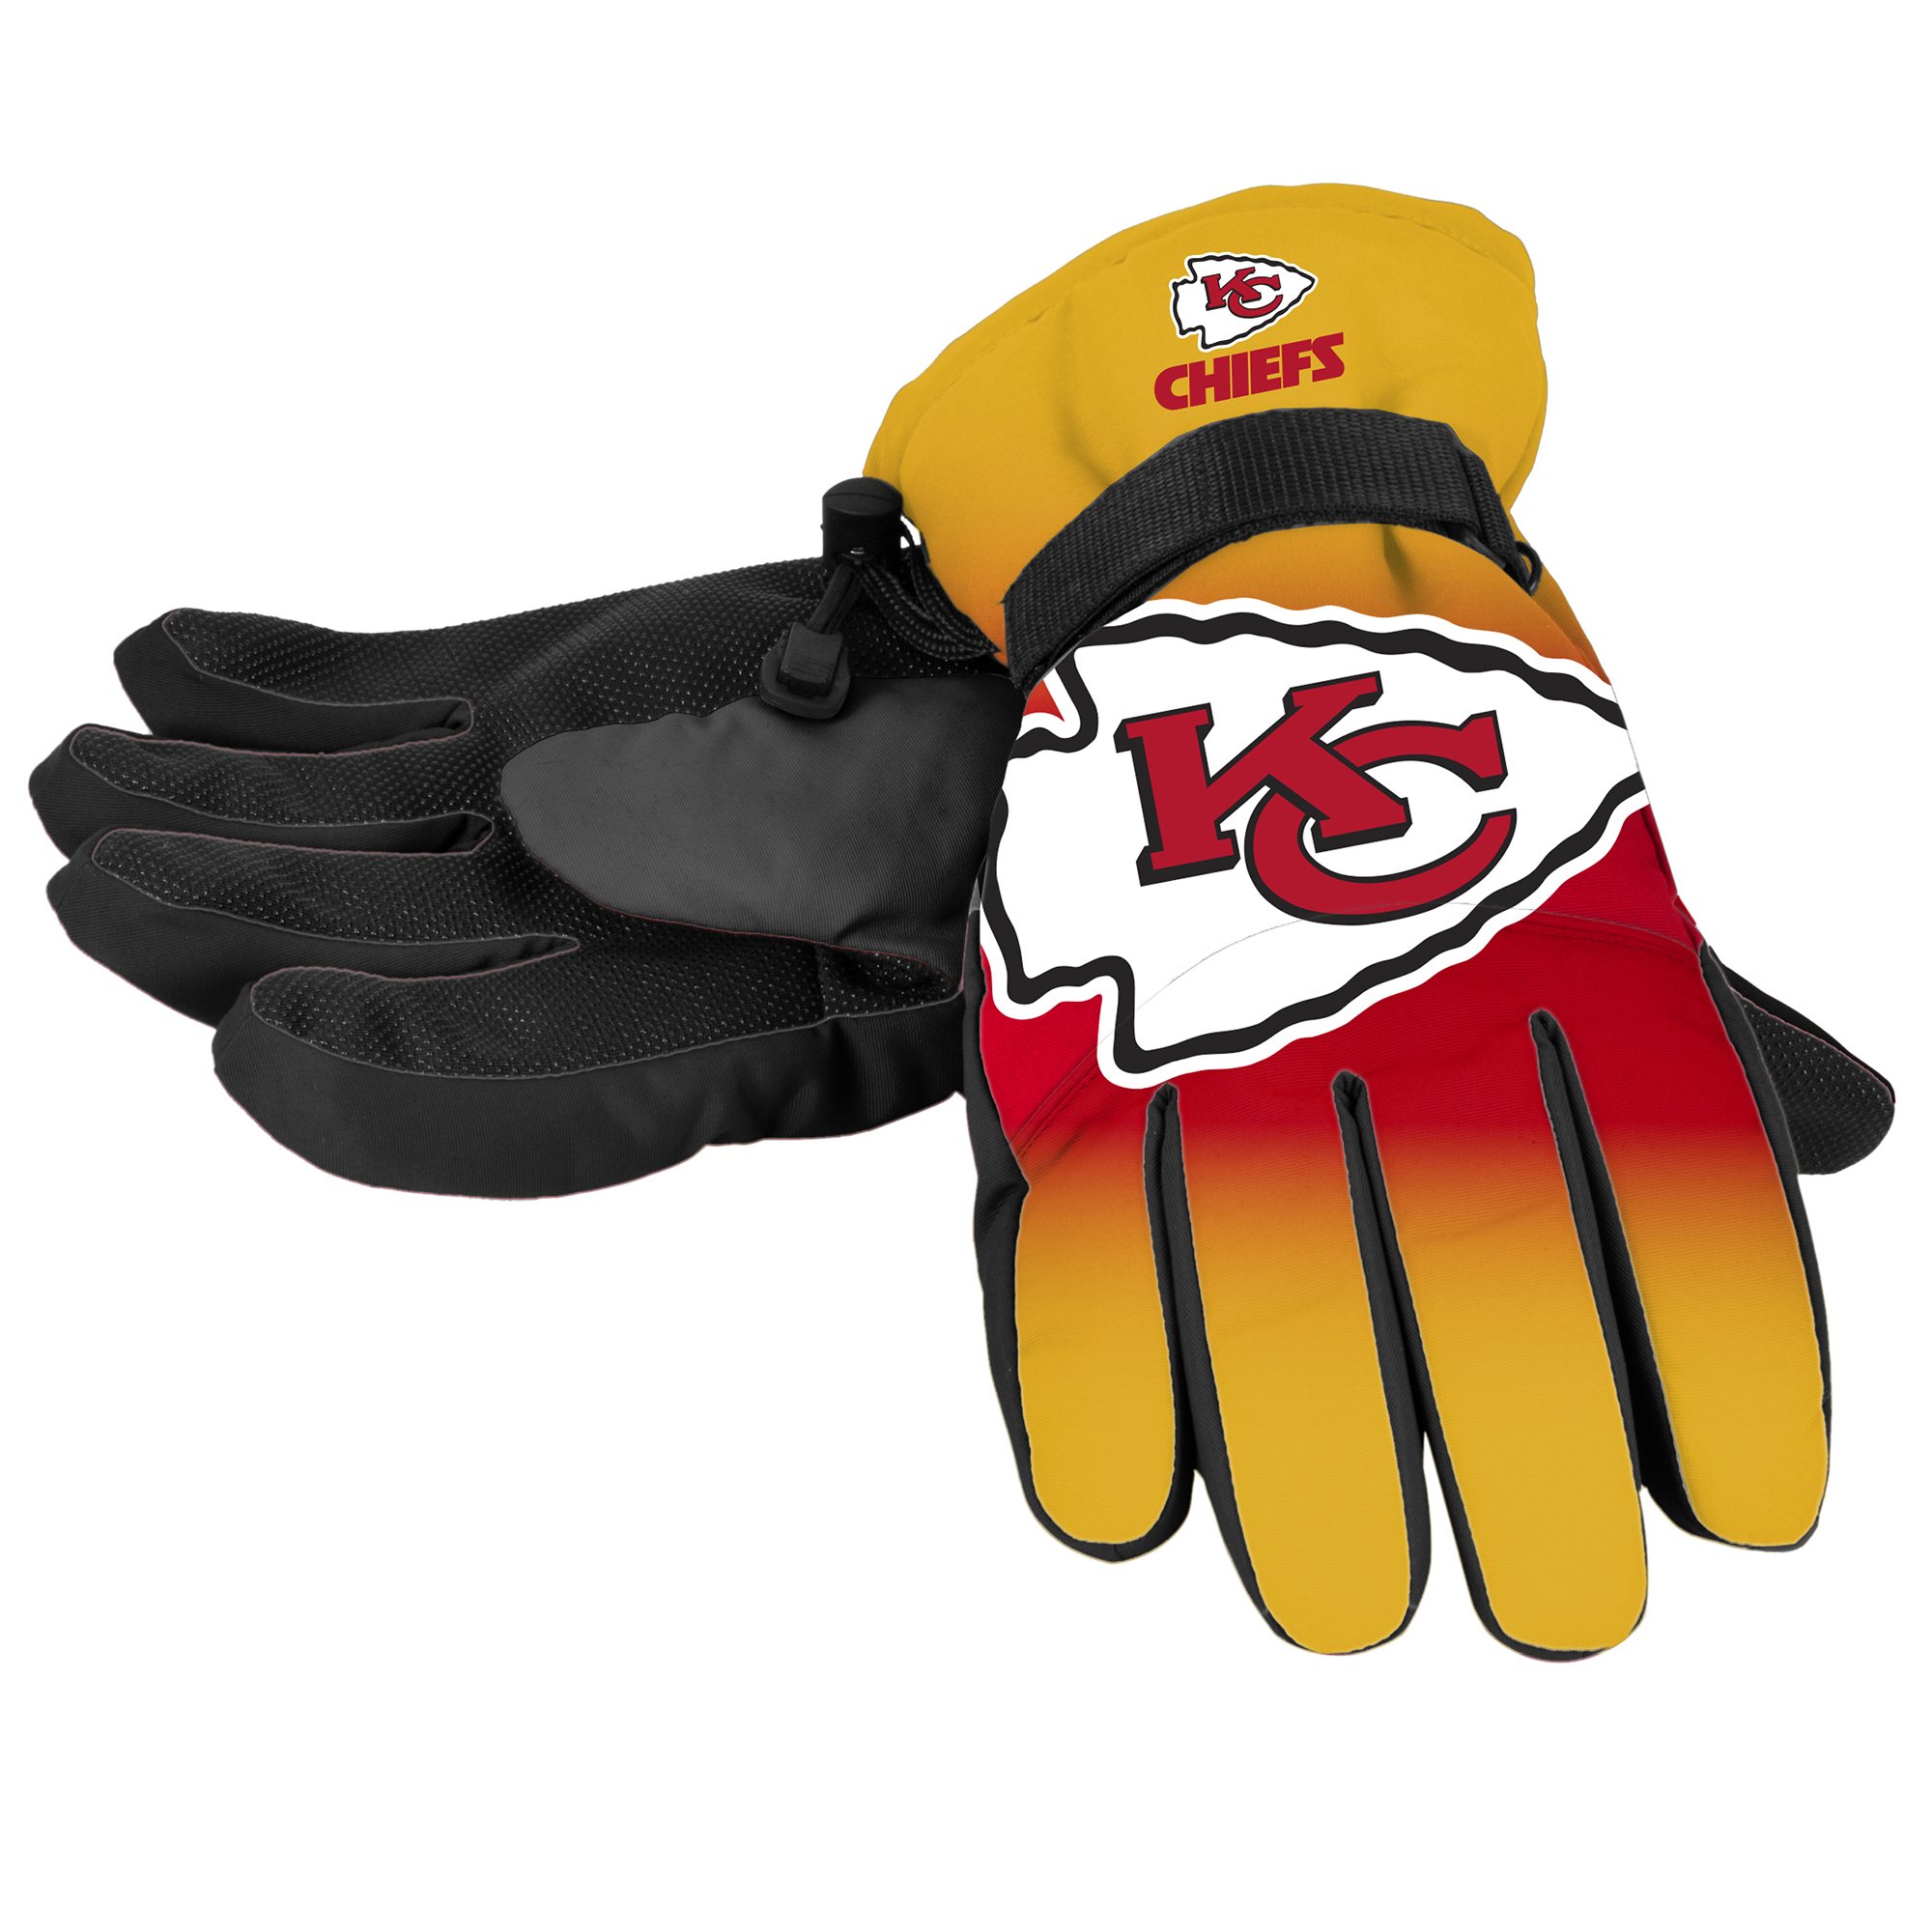 Forever Collectibles NFL Gradient Big Logo Insulated Gloves-Small Medium, Kansas City Chiefs by Forever Collectible